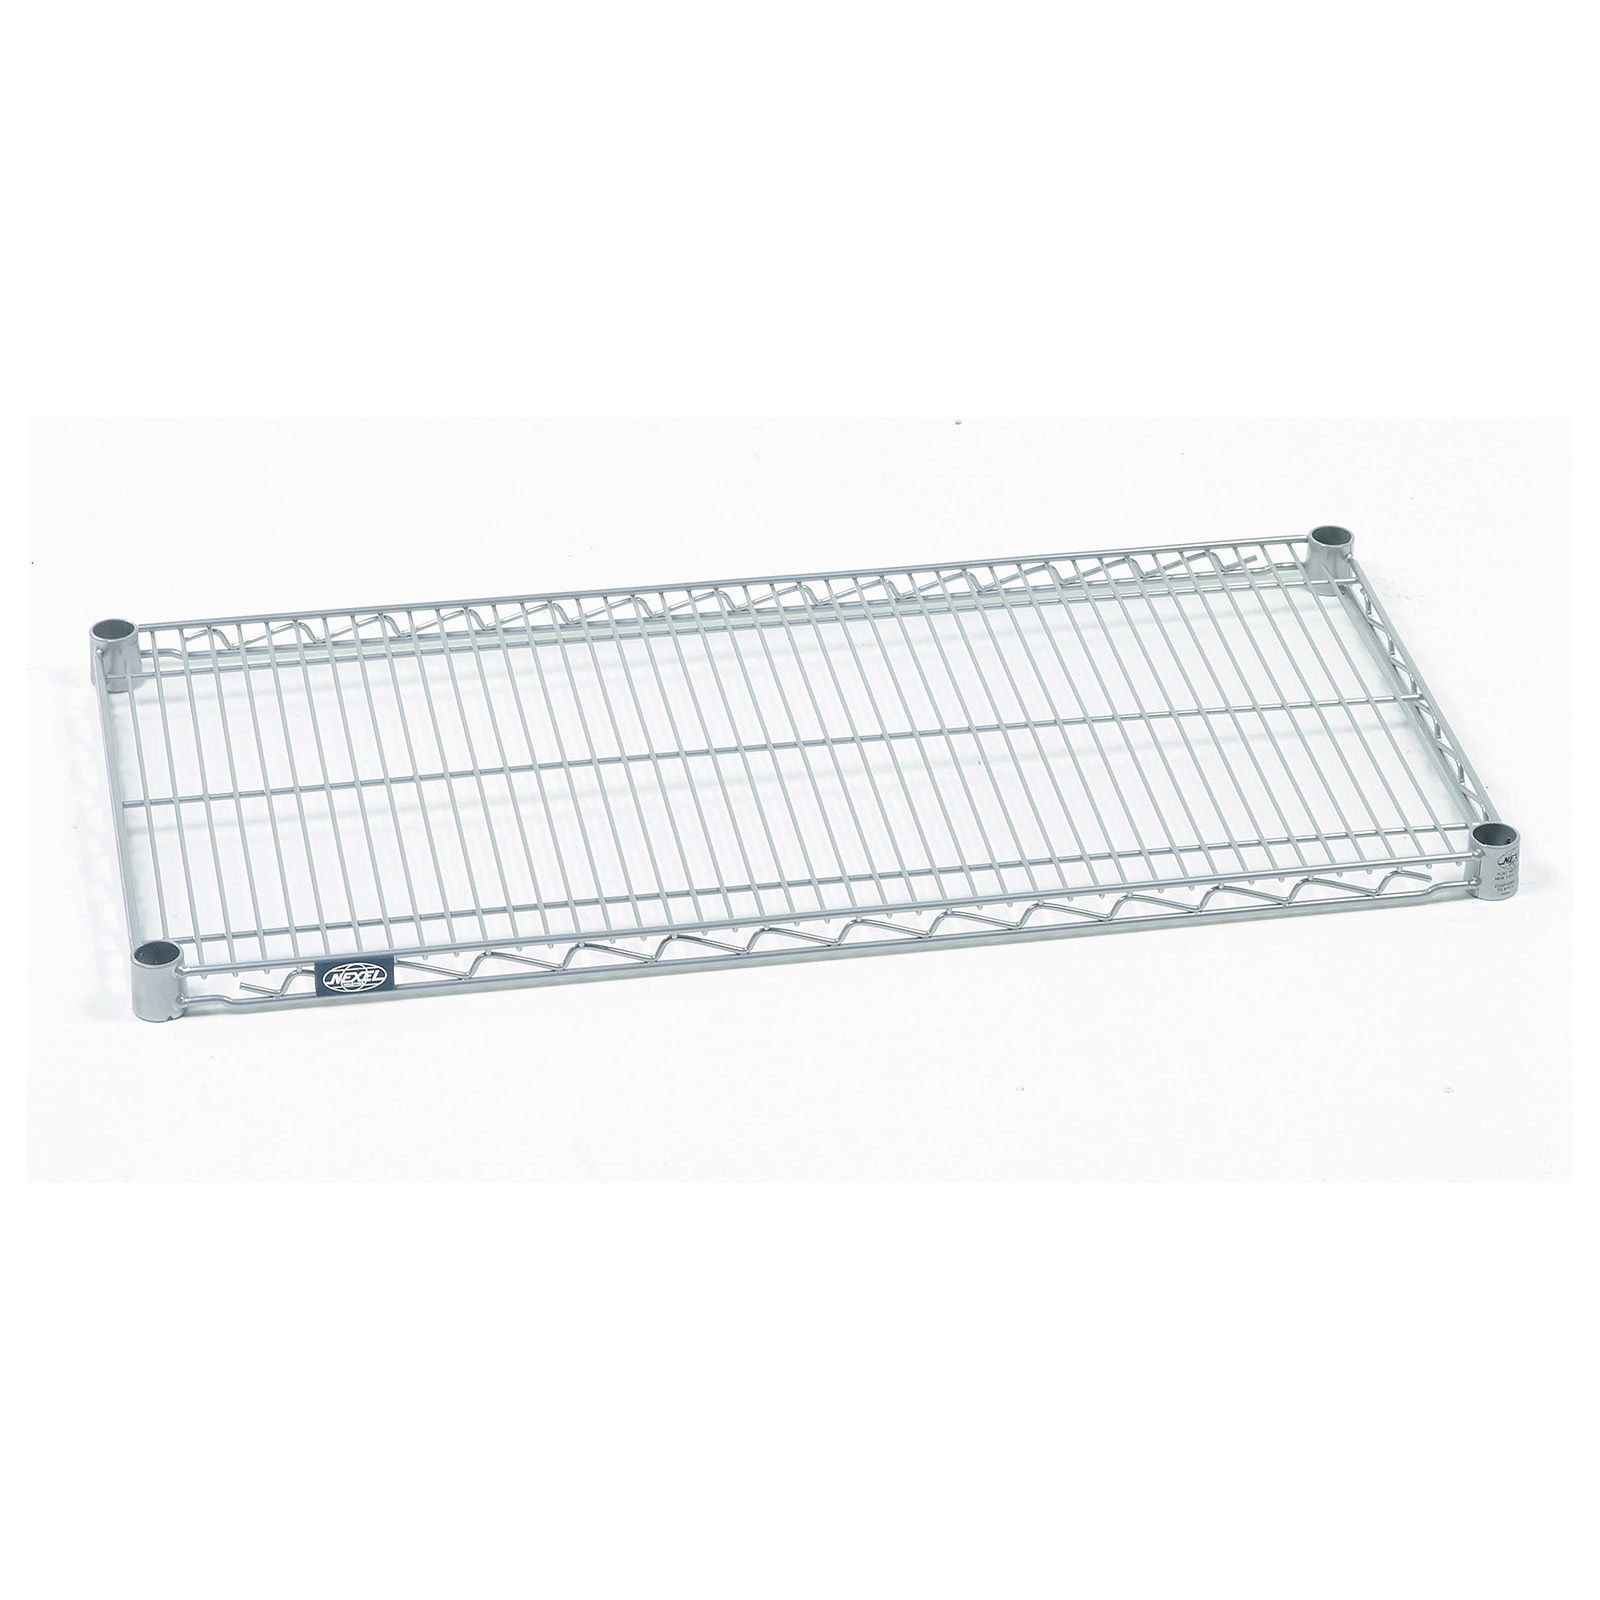 Nexel S3672EP wire shelves